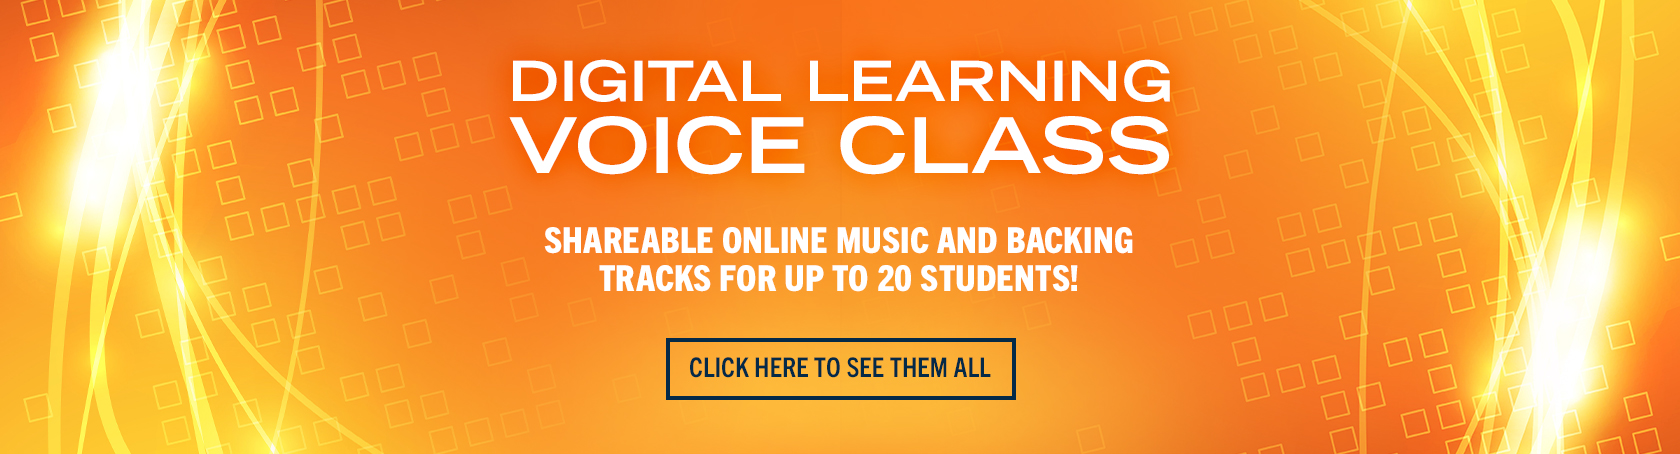 Digital Learning Voice Lessons